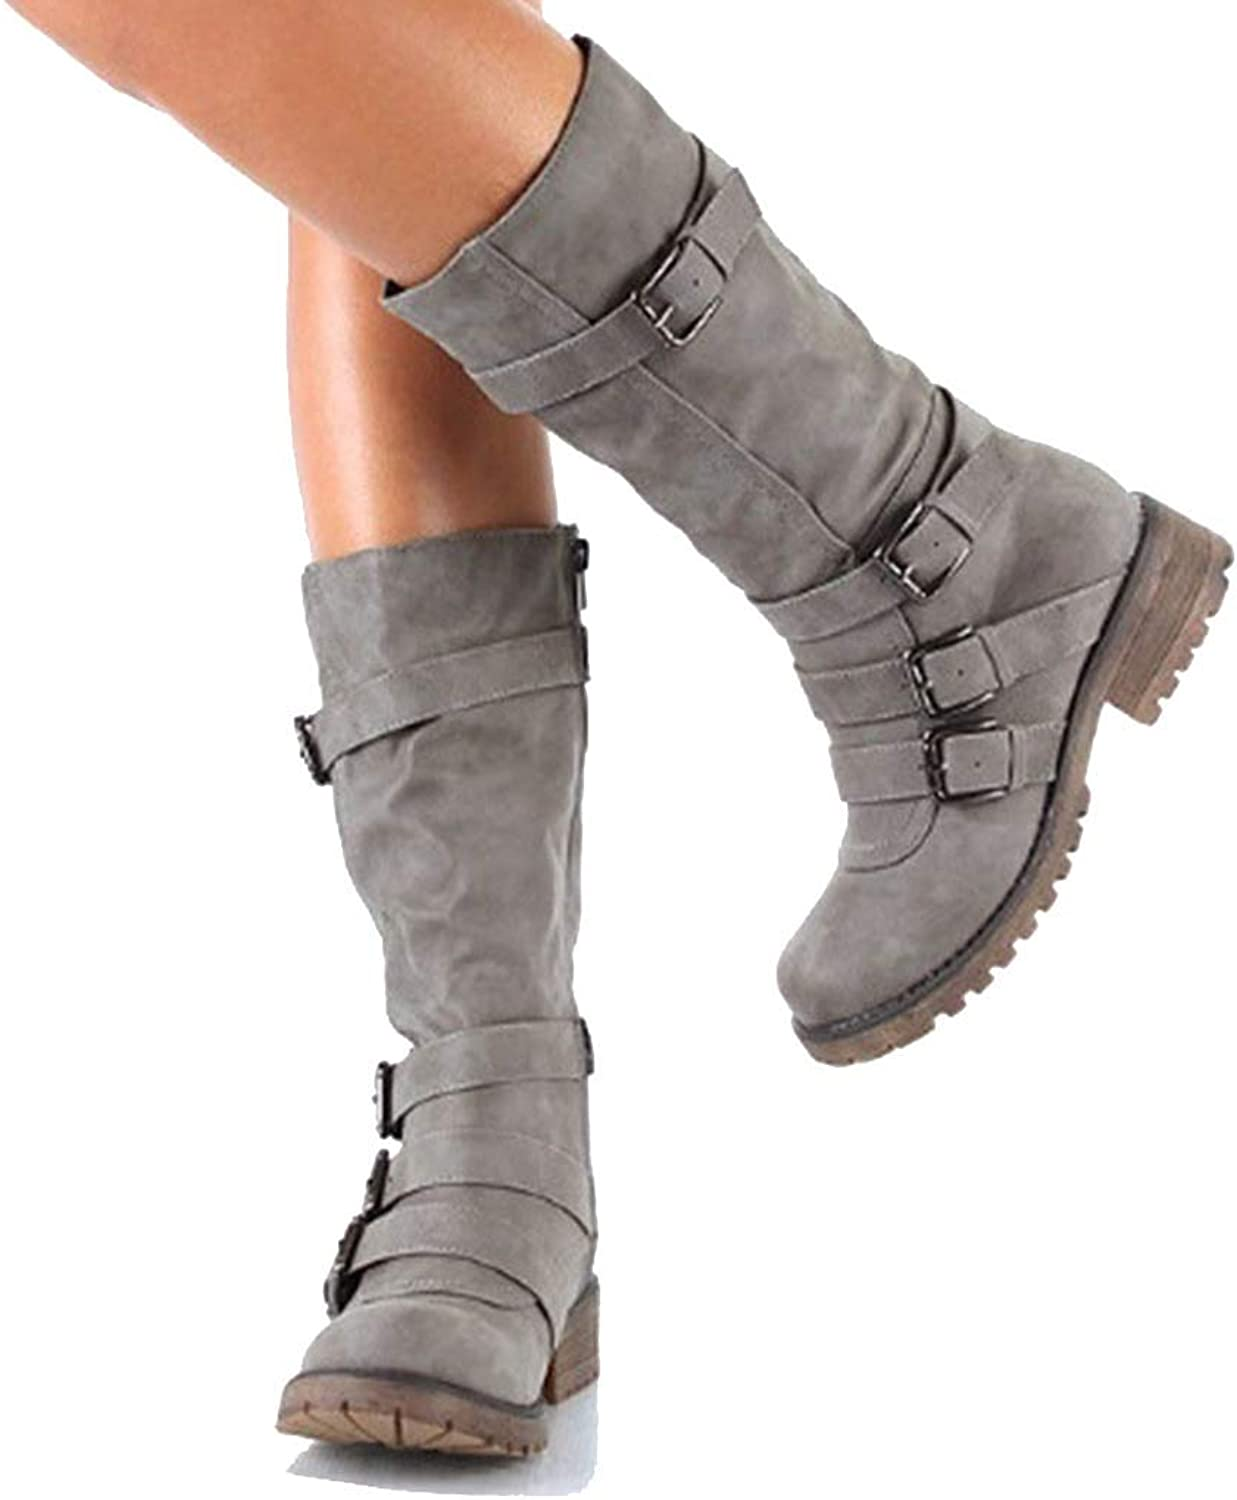 Elsa Wilcox Womens High Tube Flat Riding Winter Boots Winter Snow Boots Mid Calf Slouchy Boot Dress shoes